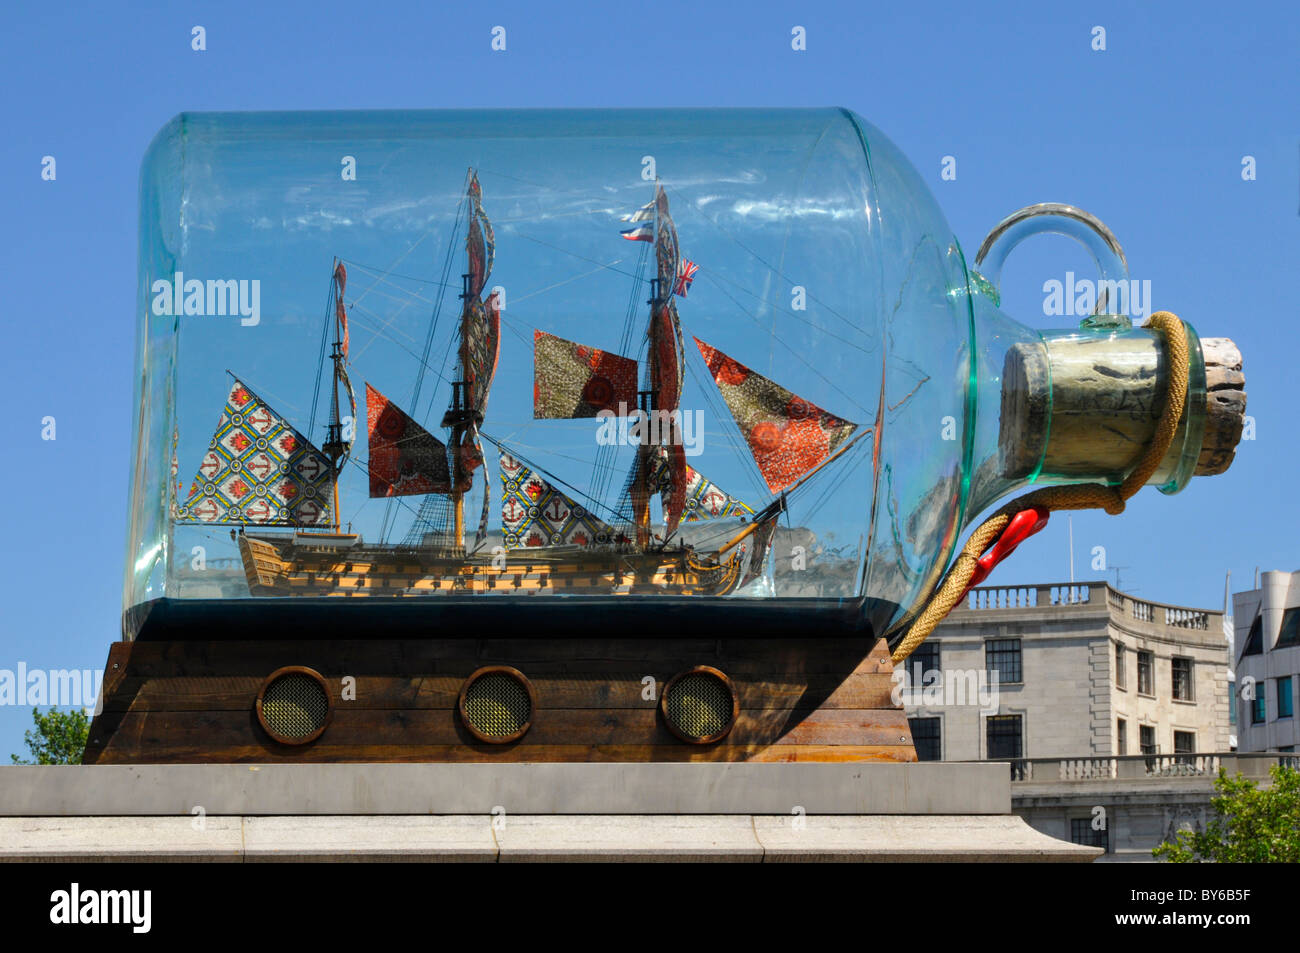 Close up of Nelsons flagship ship in a bottle by Yinka Shonibare on the fourth plinth in Trafalgar Square London - Stock Image